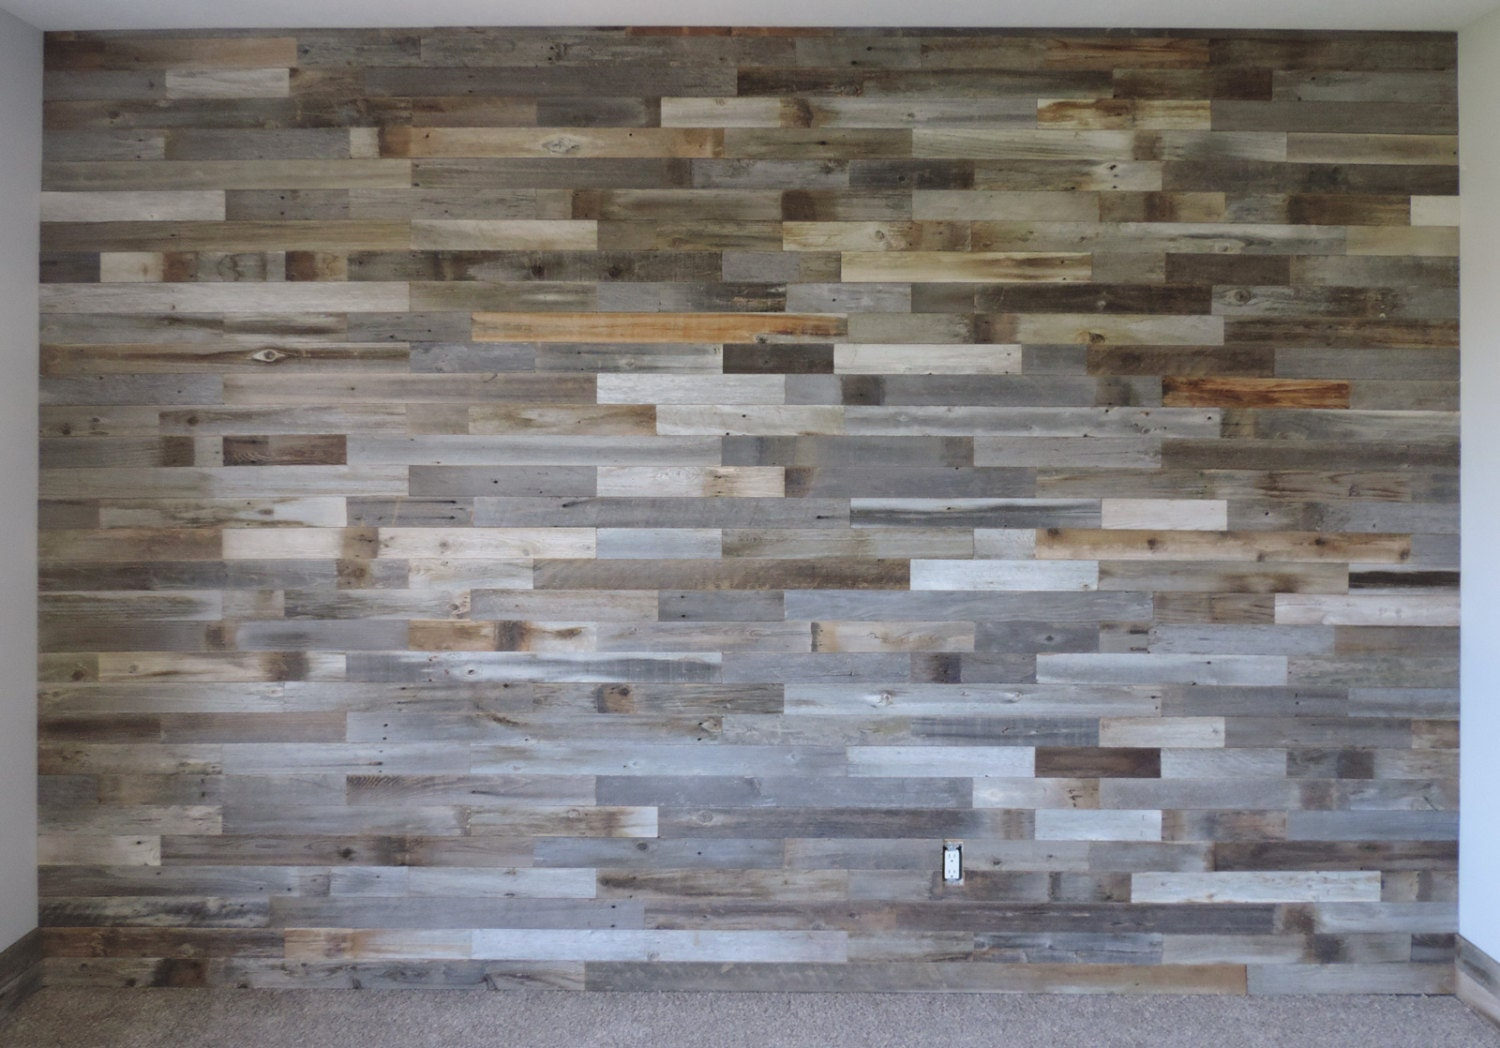 Reclaimed wood wall paneling diy asst 3 inch boards by Reclaimed woods